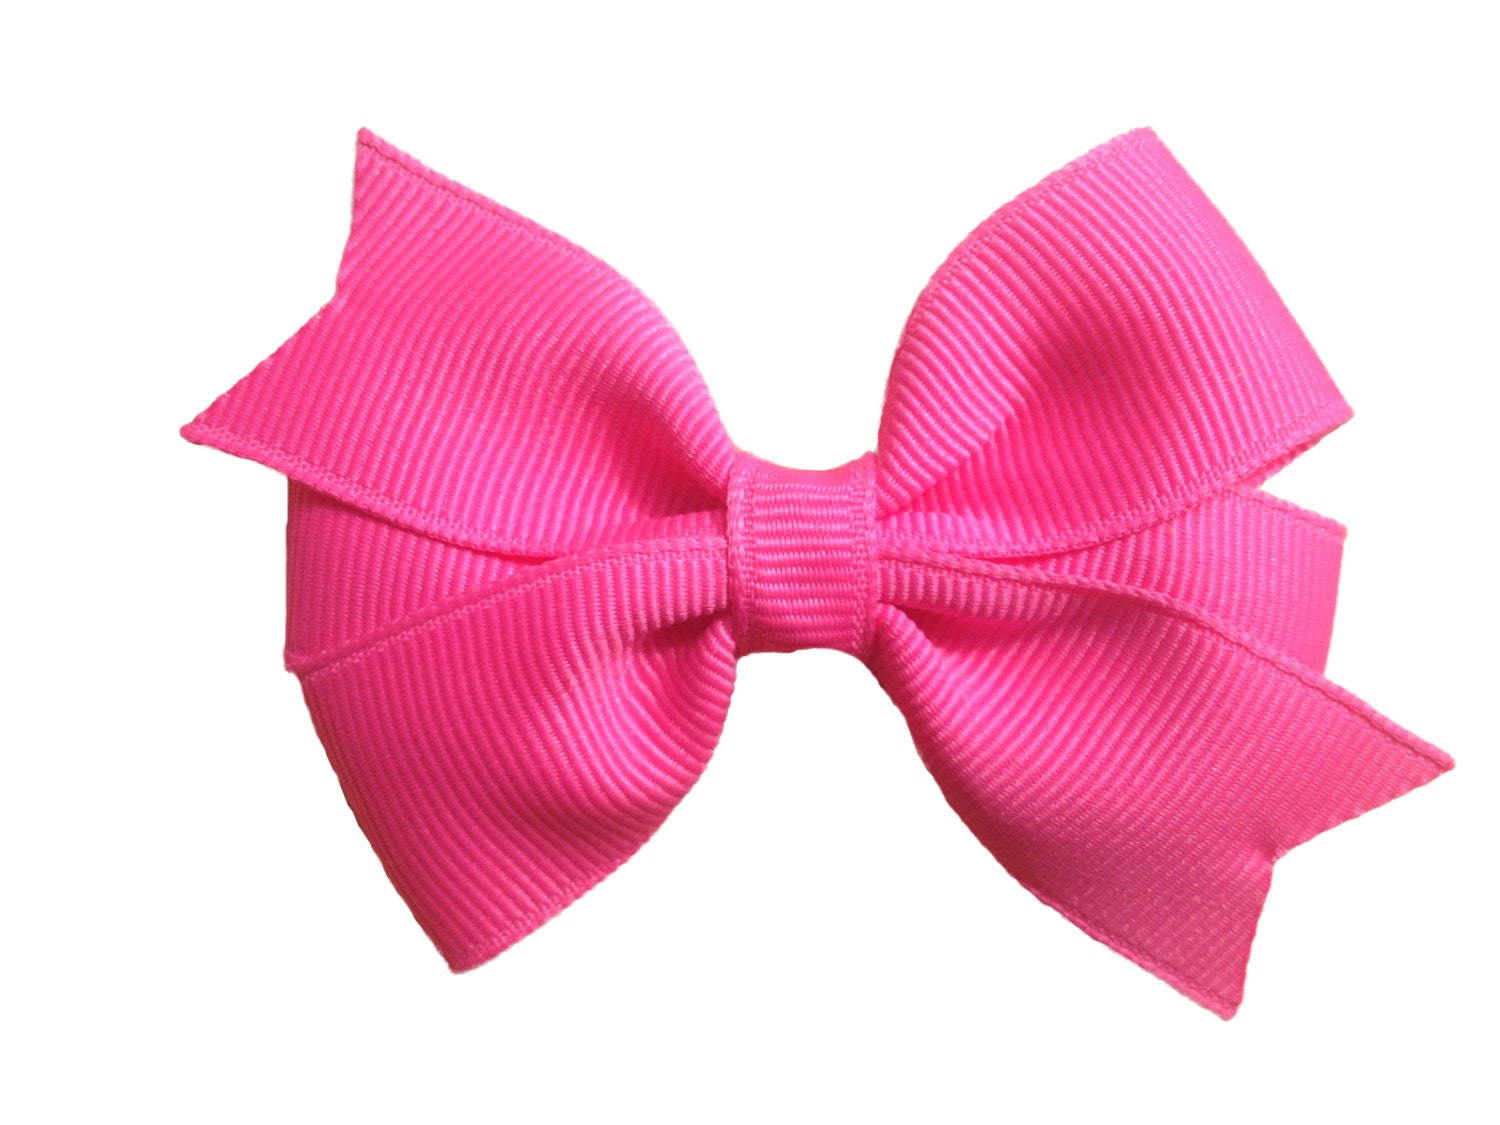 popular items for pink hair bows on etsy